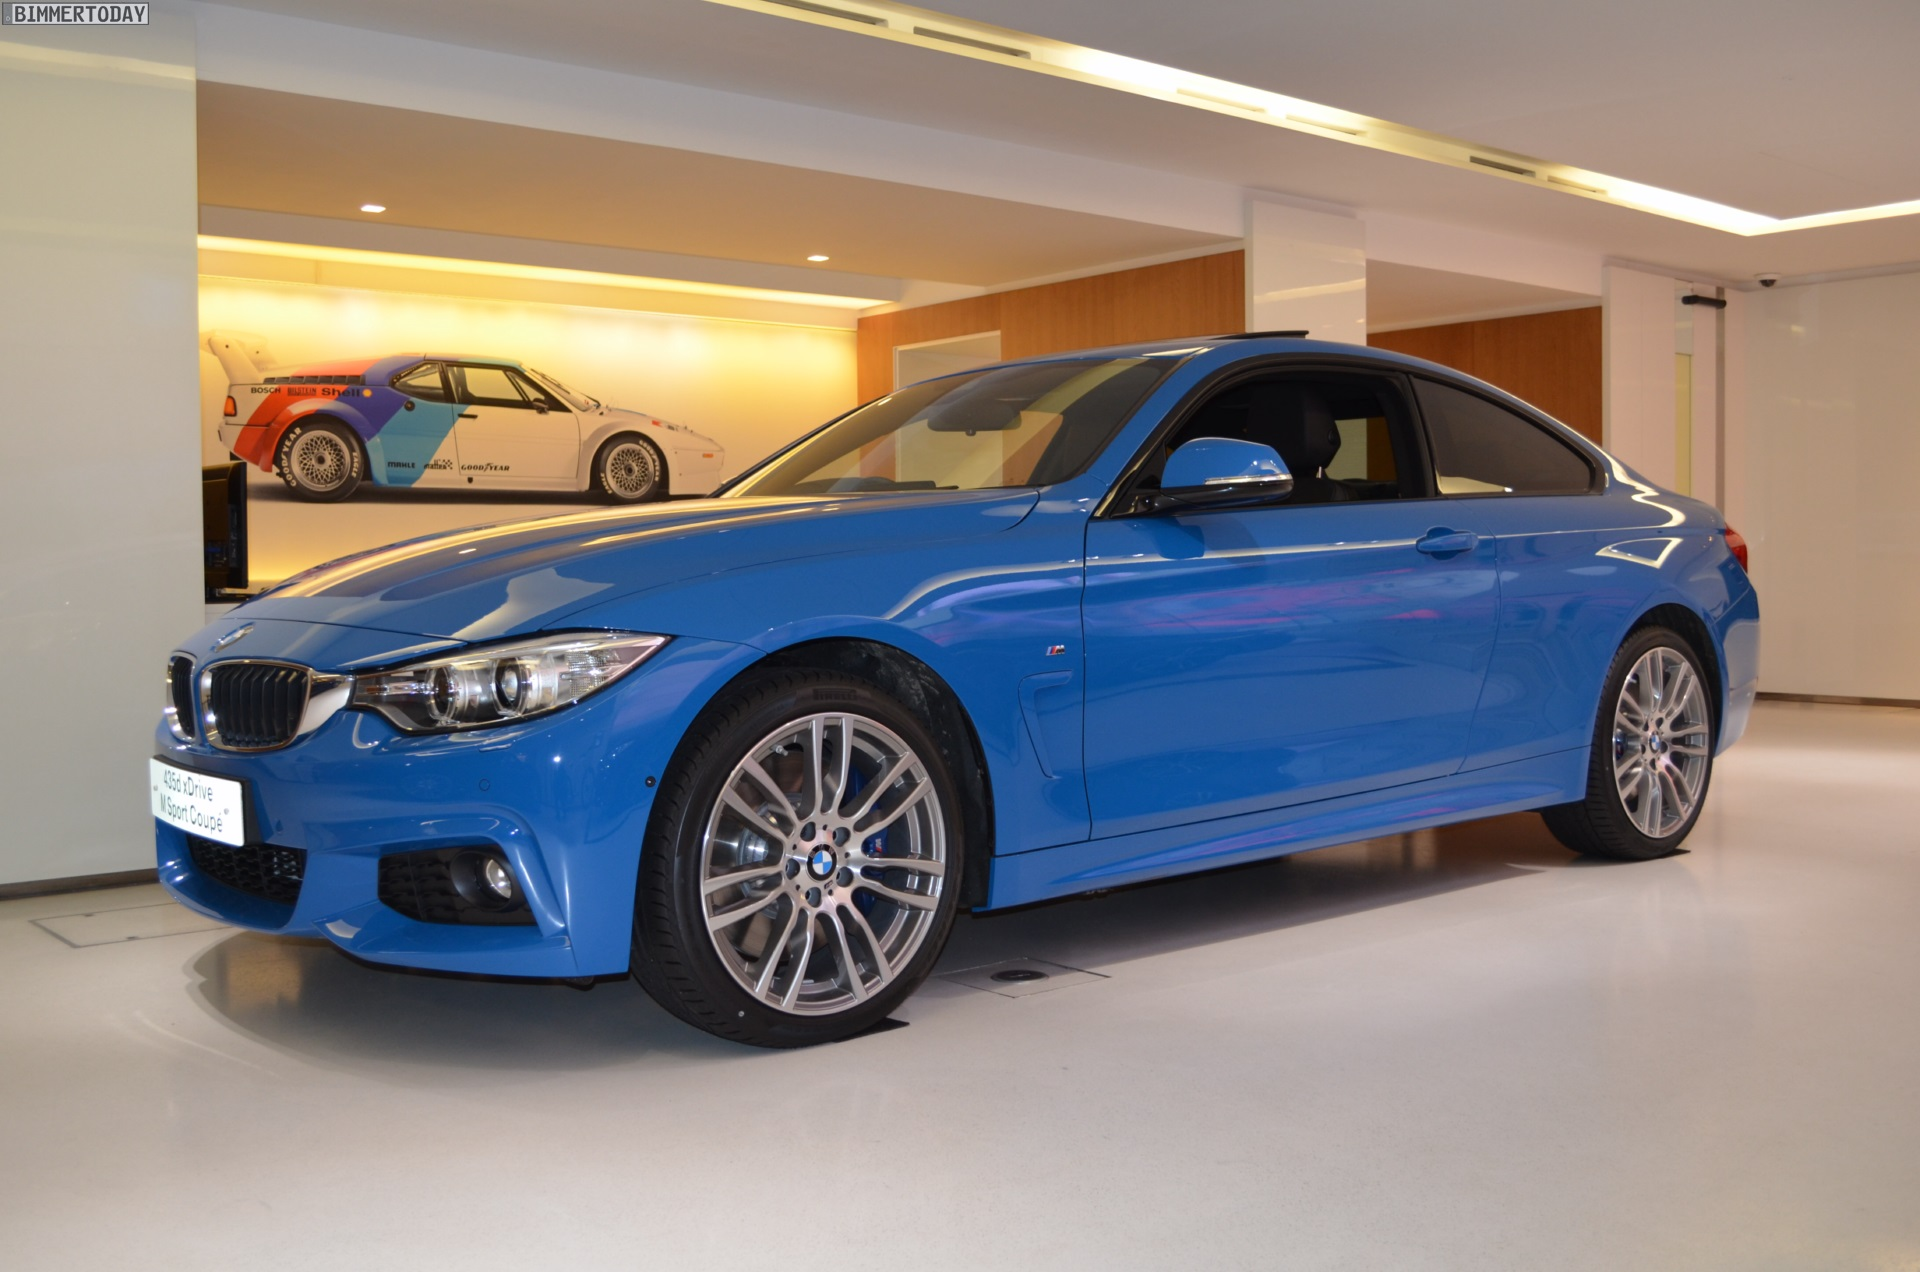 BMW 4 Series Coupe in Pure Blue Individual color